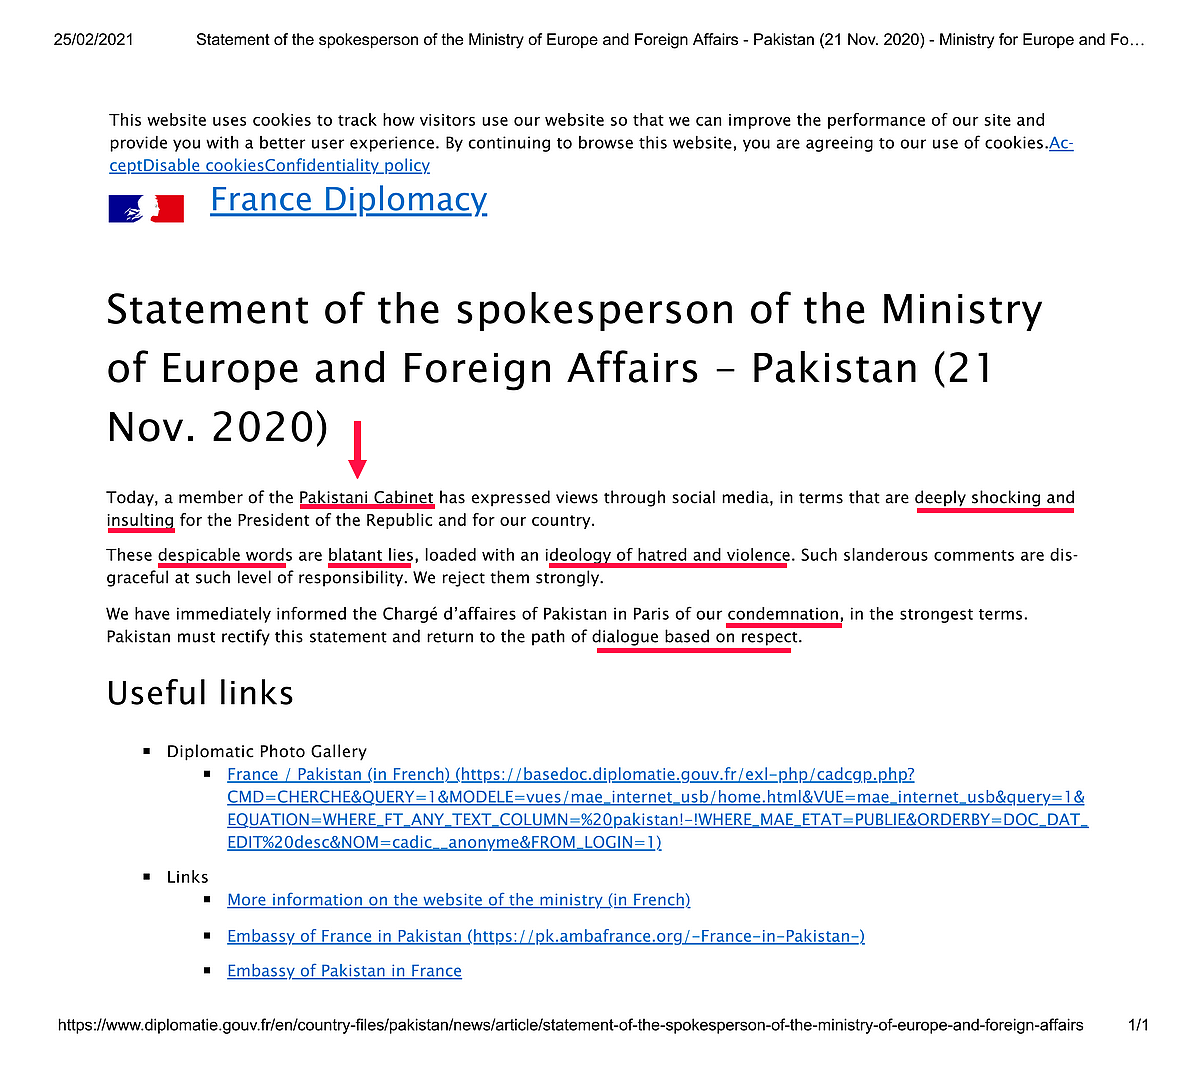 Shireen Mazari, Pakistan, France Insulting , deeply shocking, blatant lies, disgraceful, ideology of hatred and violence.